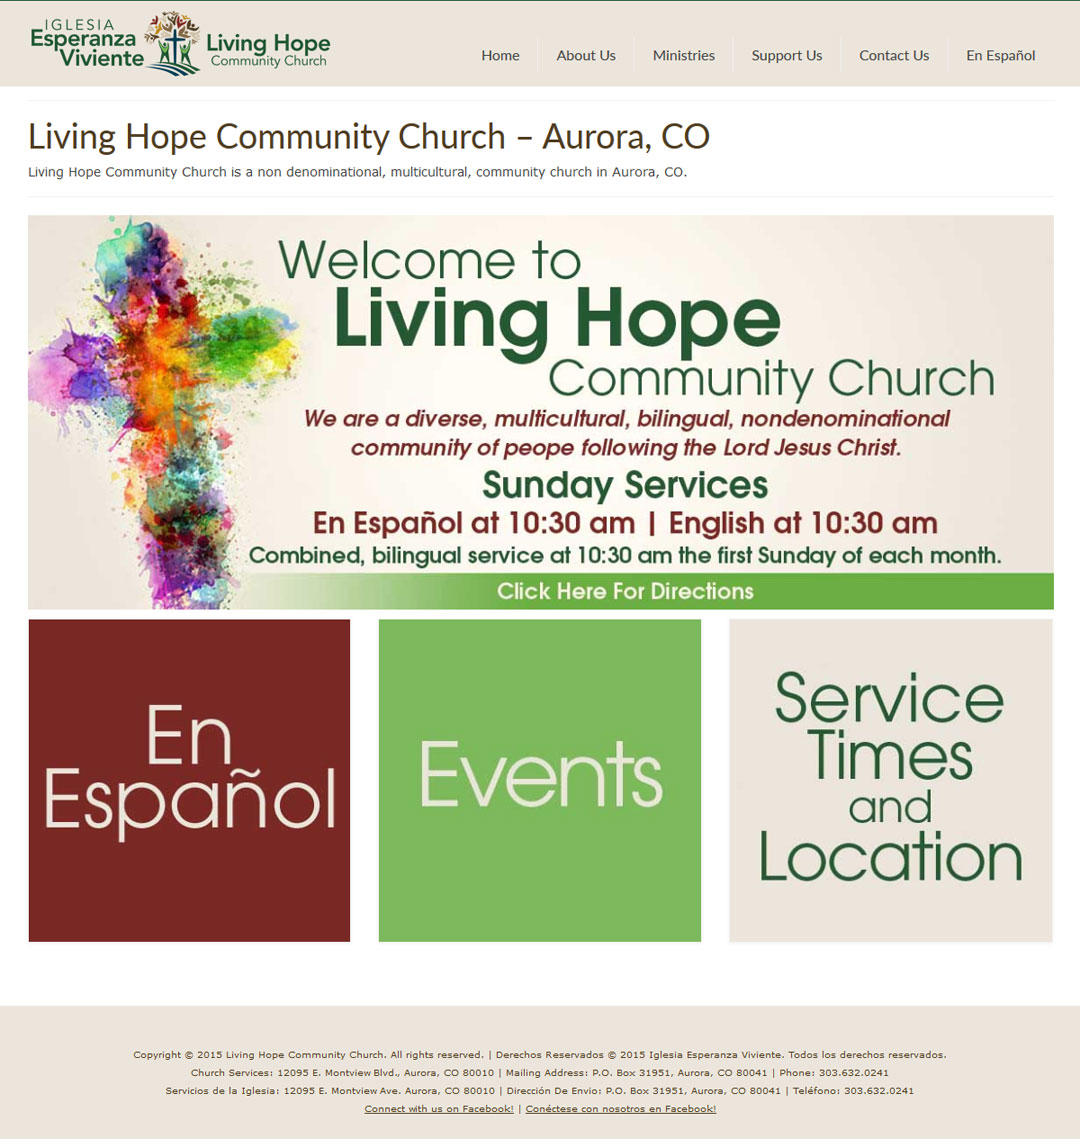 Church Website Redesign: Living Hope Community Church